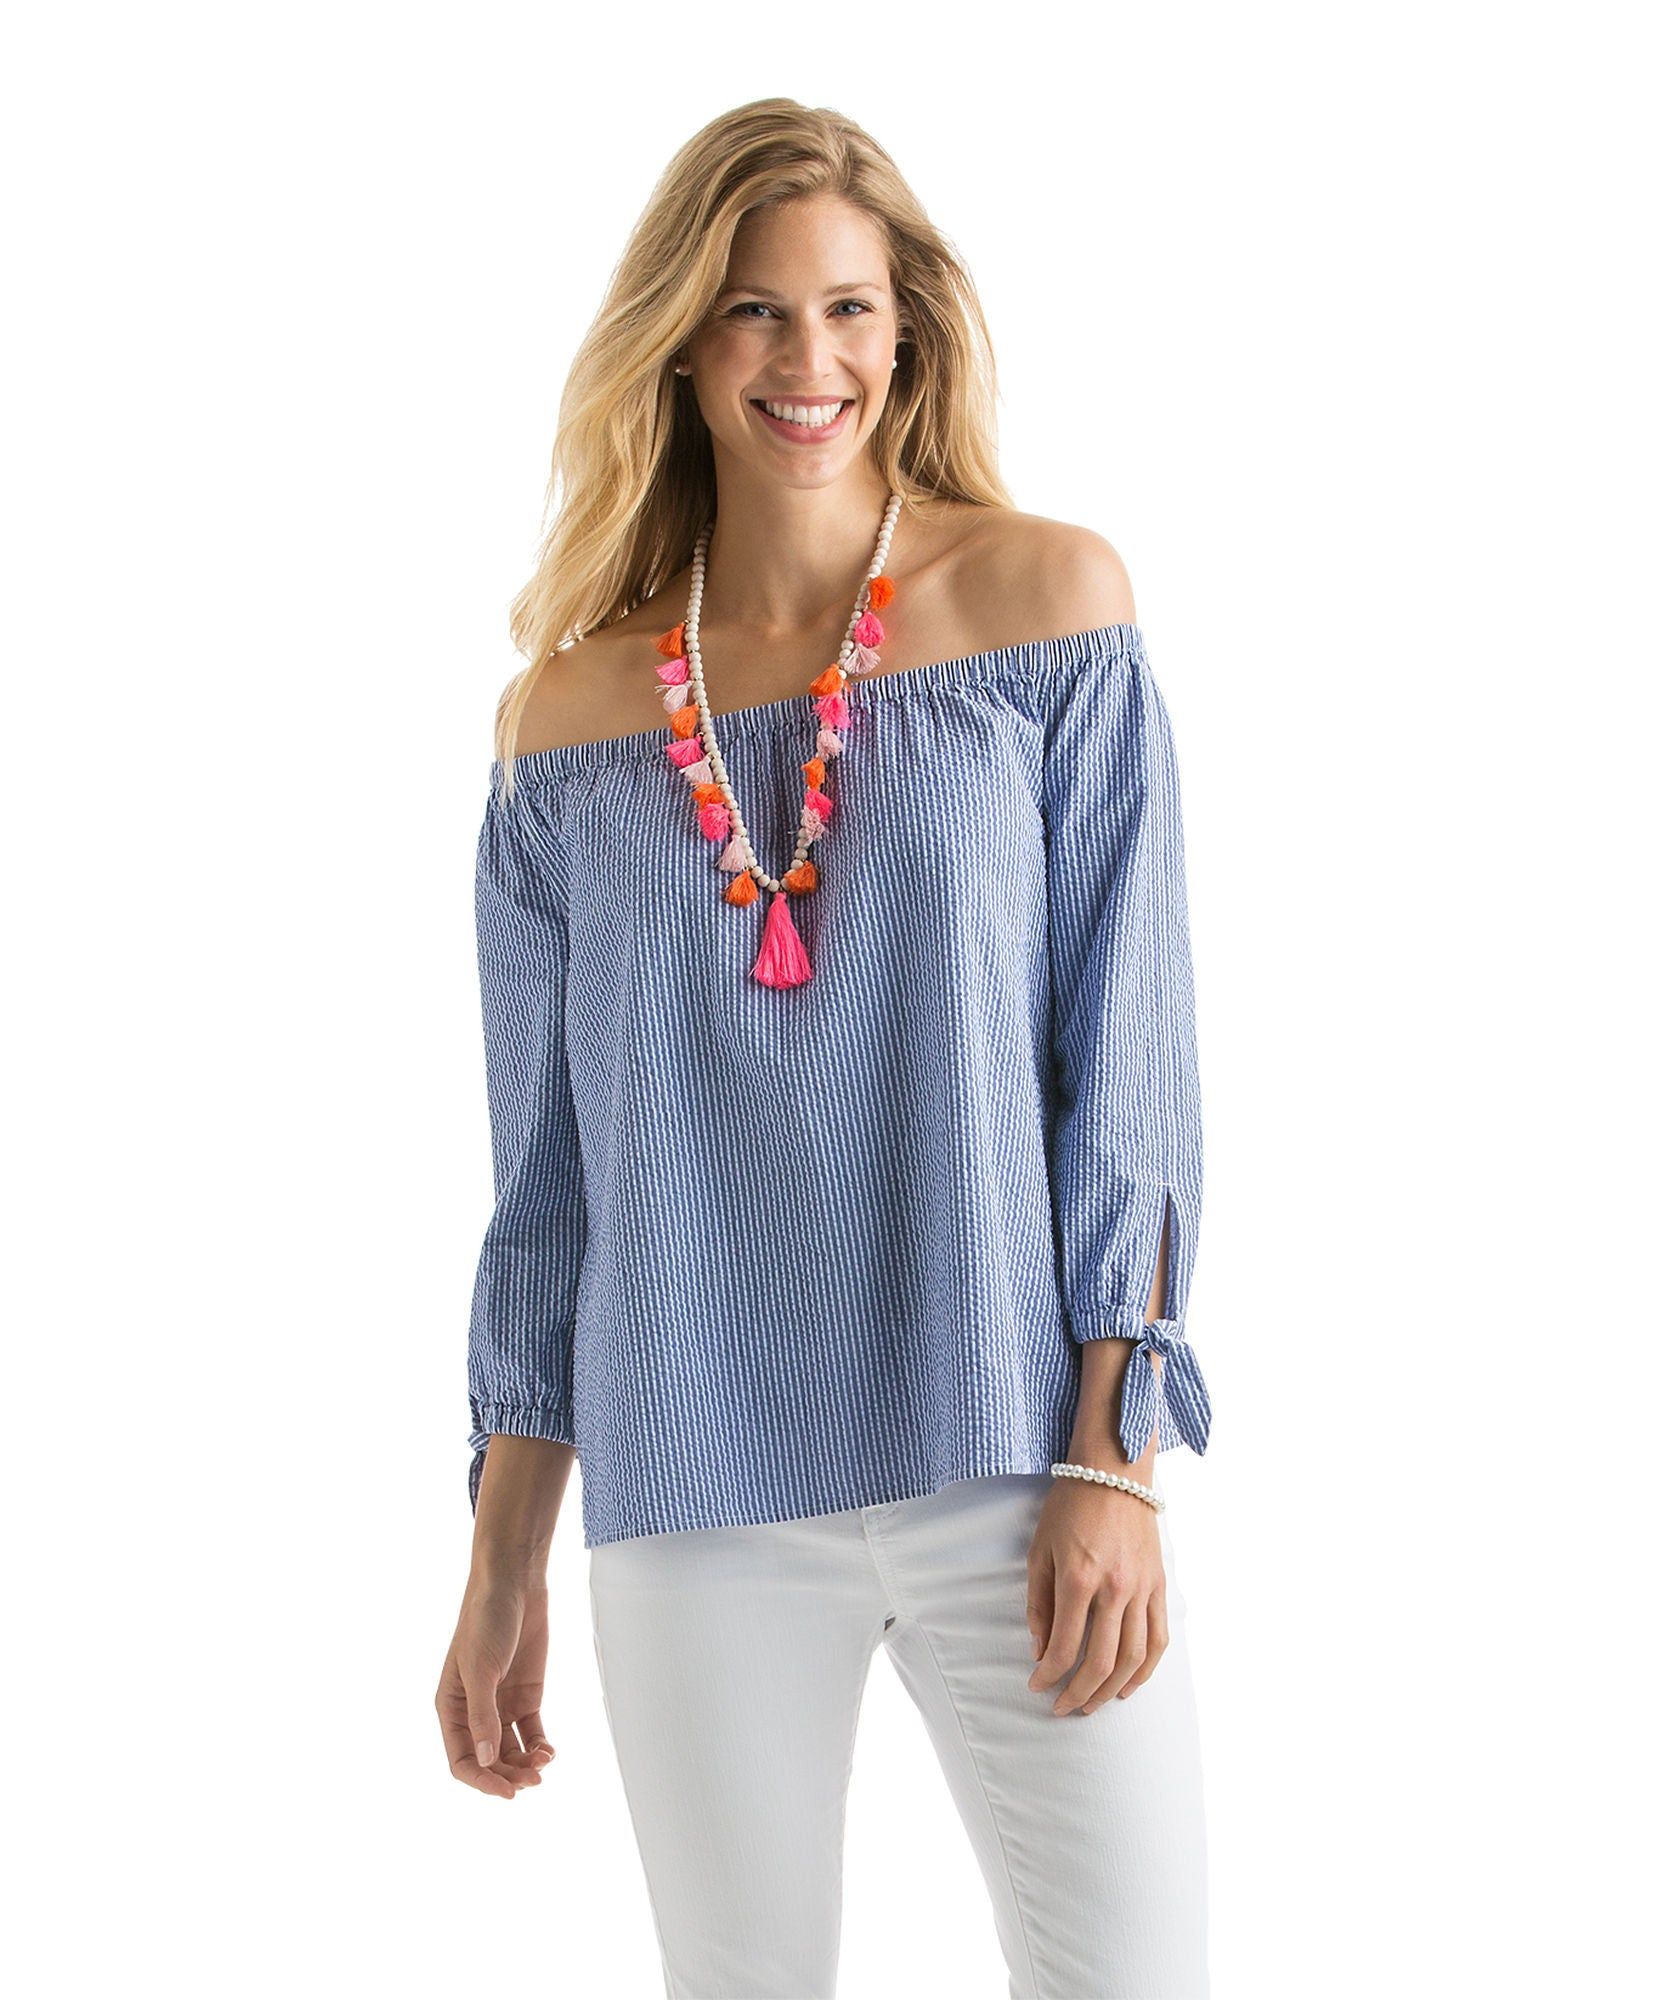 Vineyard Vines Off The Shoulder Seersucker Top - Royal Ocean Front View